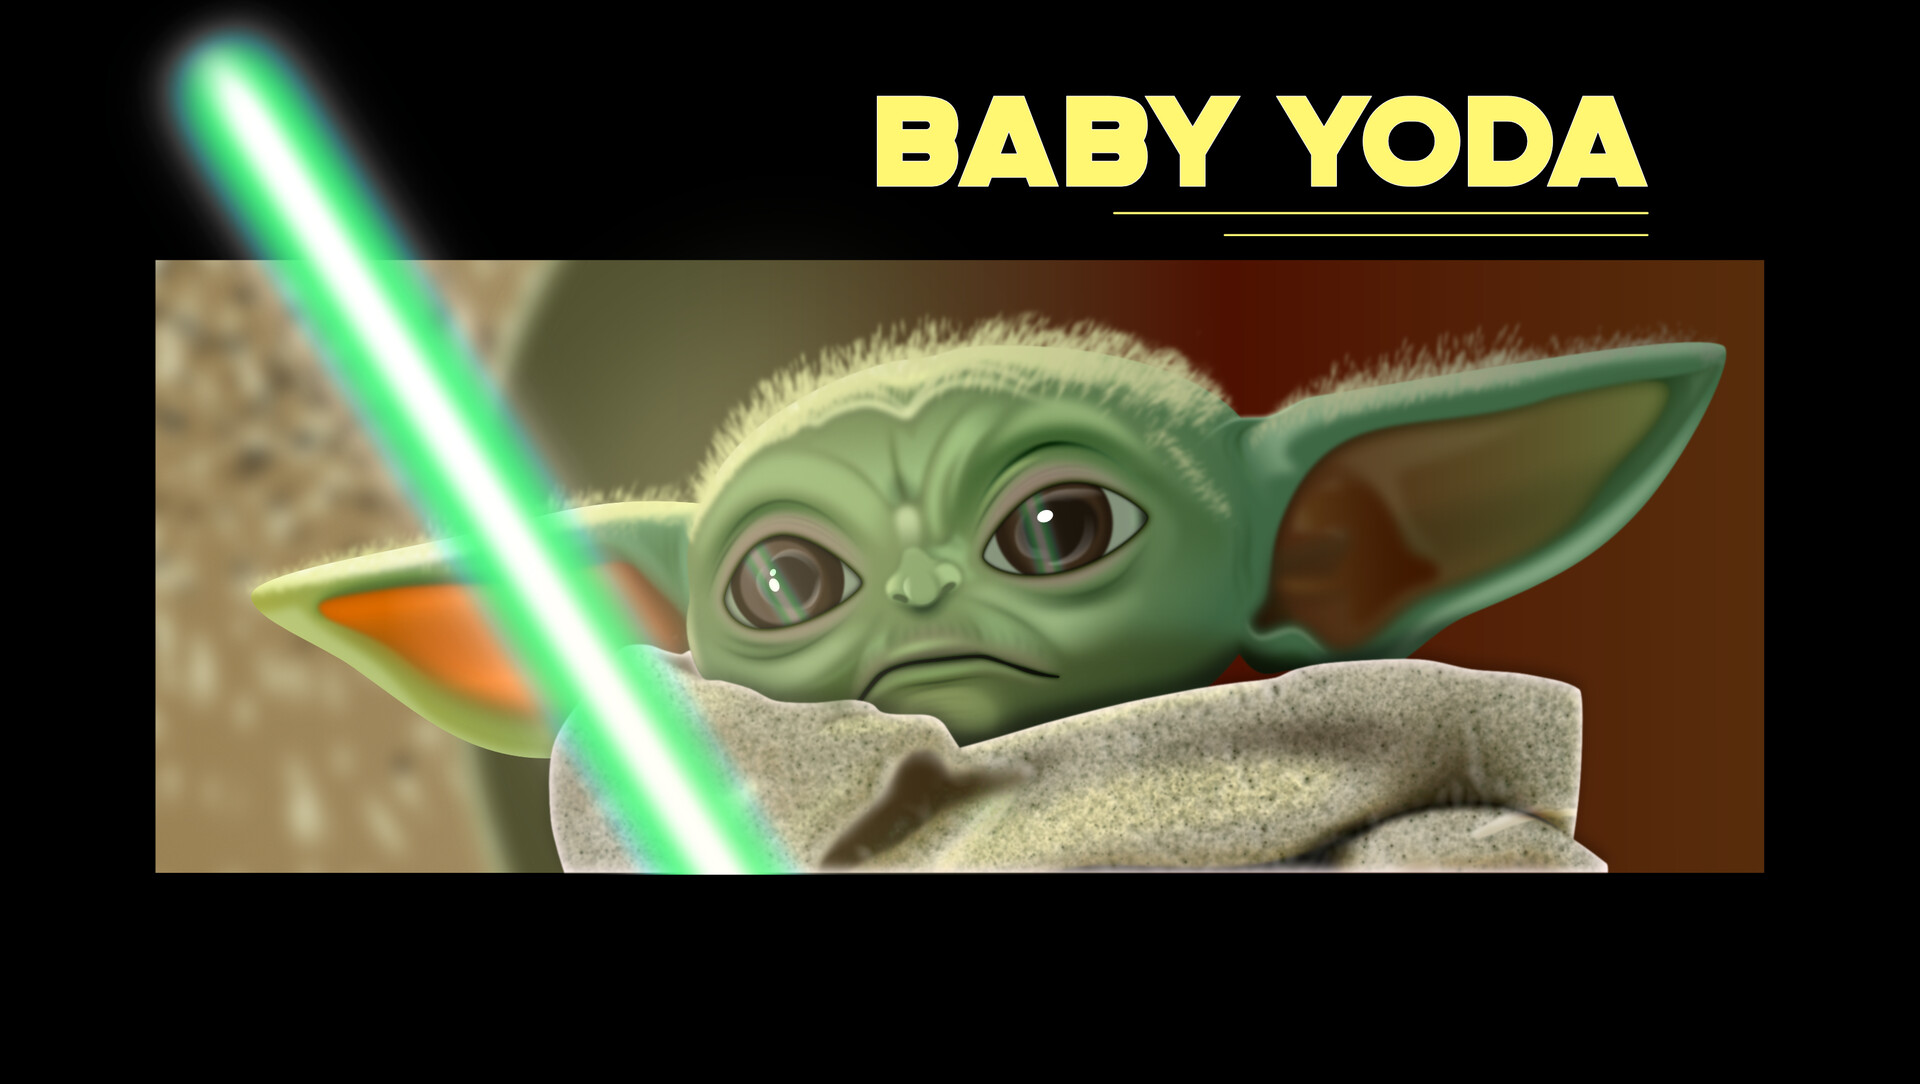 Baby Yoda's Epiphany. Affinity Designer. All vector except for hair.